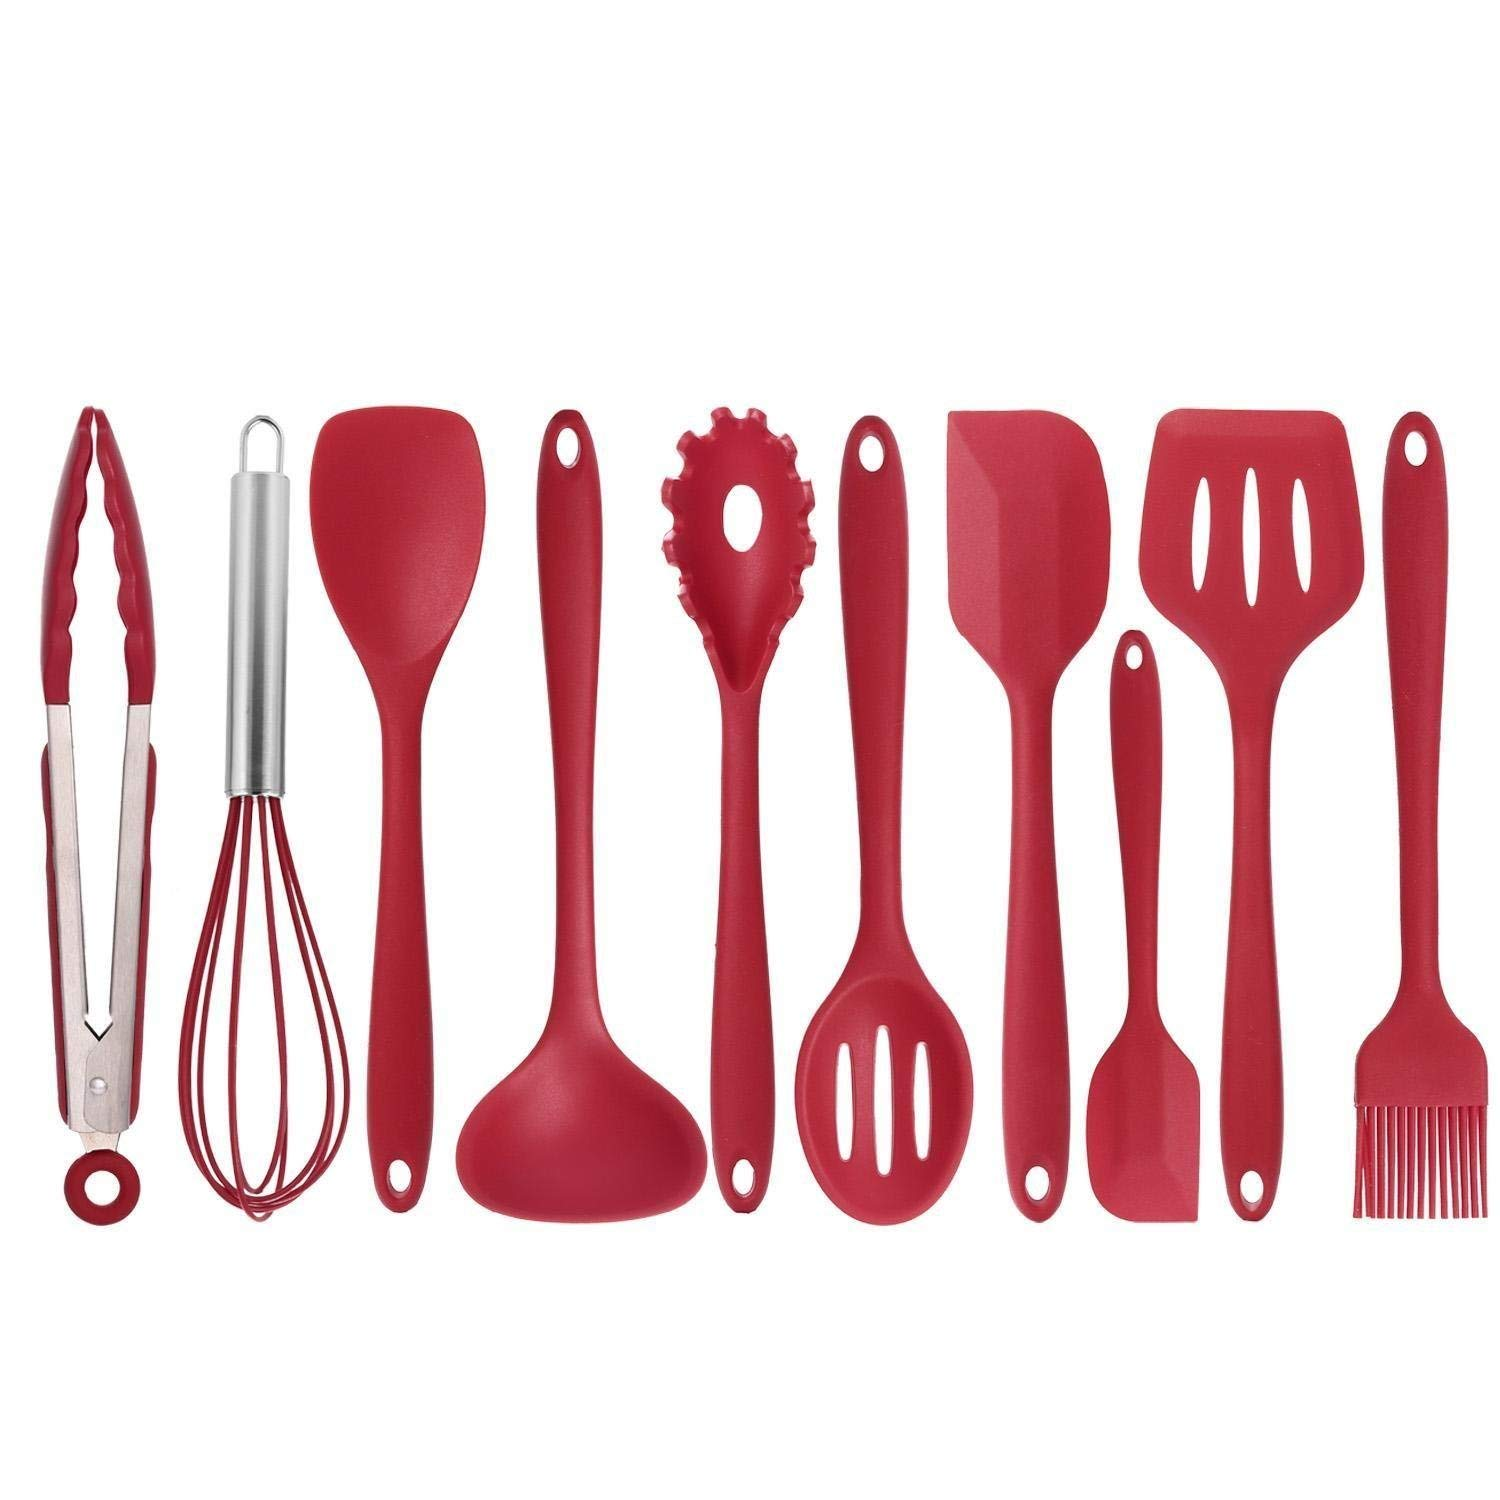 10Pcs/set Kitchen Vegetable Daily Useful Cooking Tools Non-Stick Utensils Pasta Fork Spoonula Tong Slotted Spoon (Red)